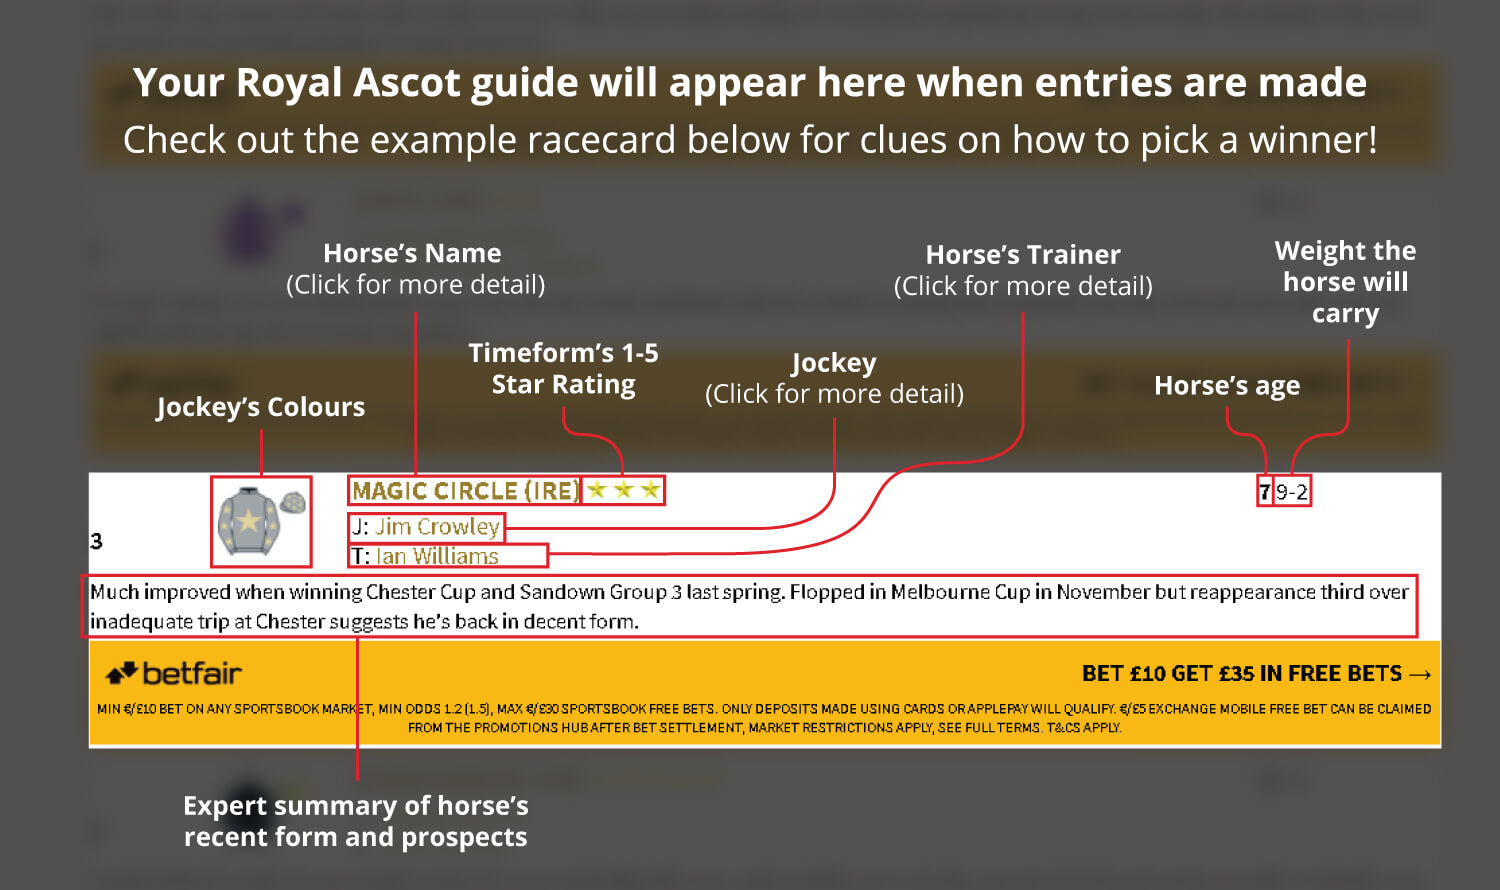 King george stakes betting lines how old to bet on sports online